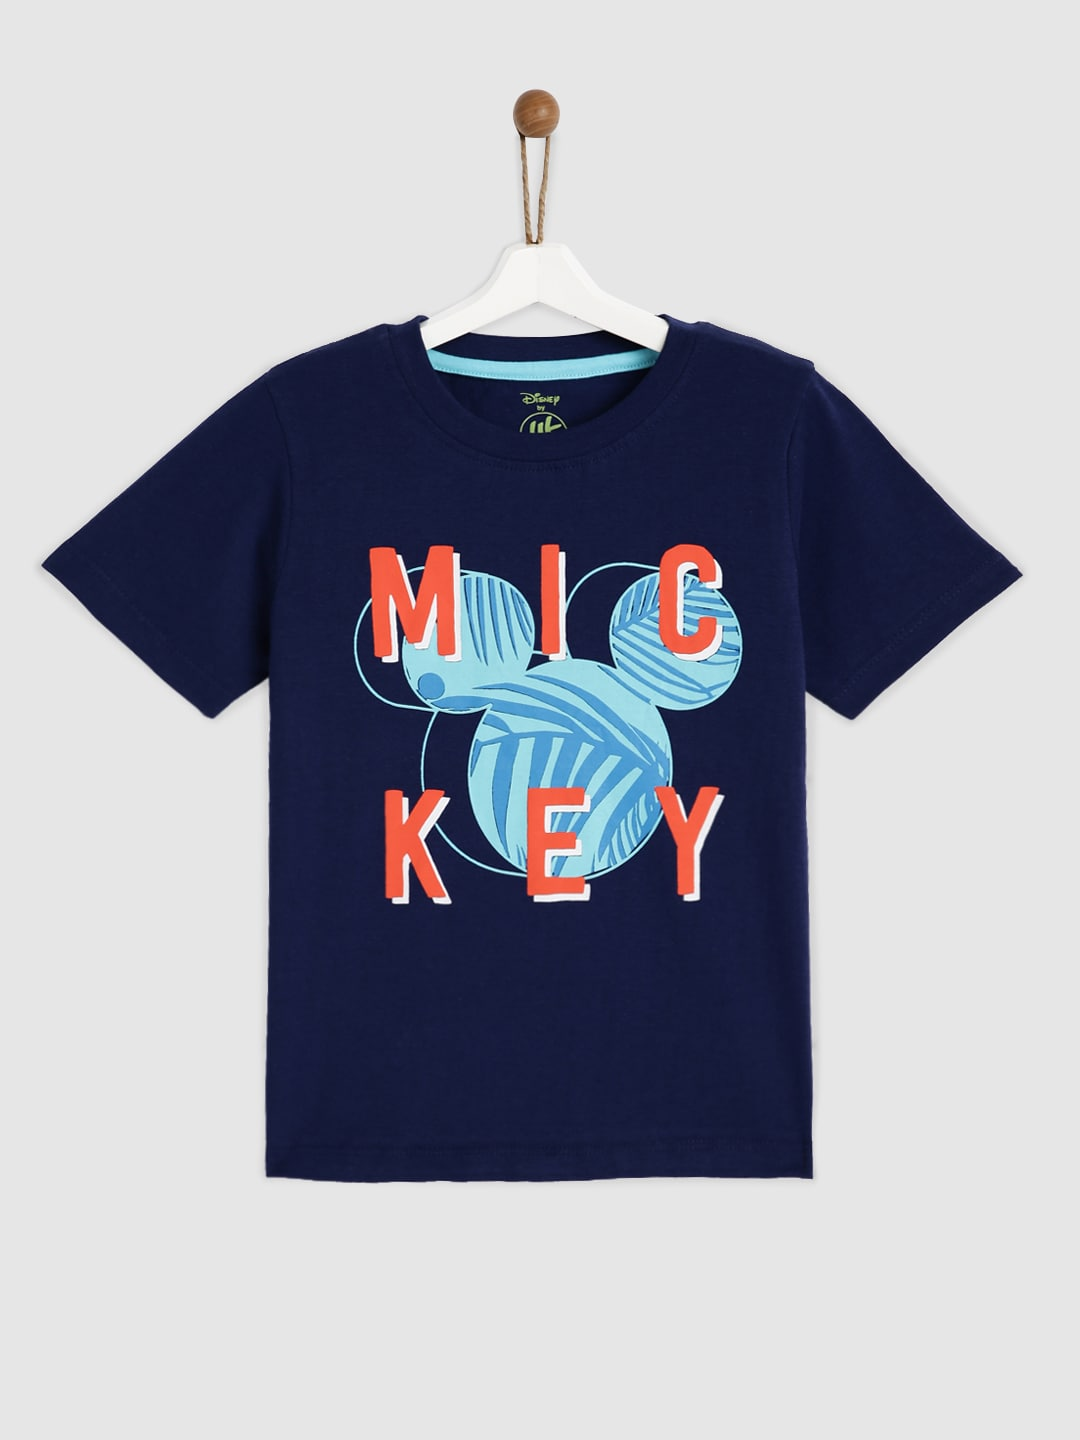 c56eb14fb Kids T shirts - Buy T shirts for Kids Online in India Myntra